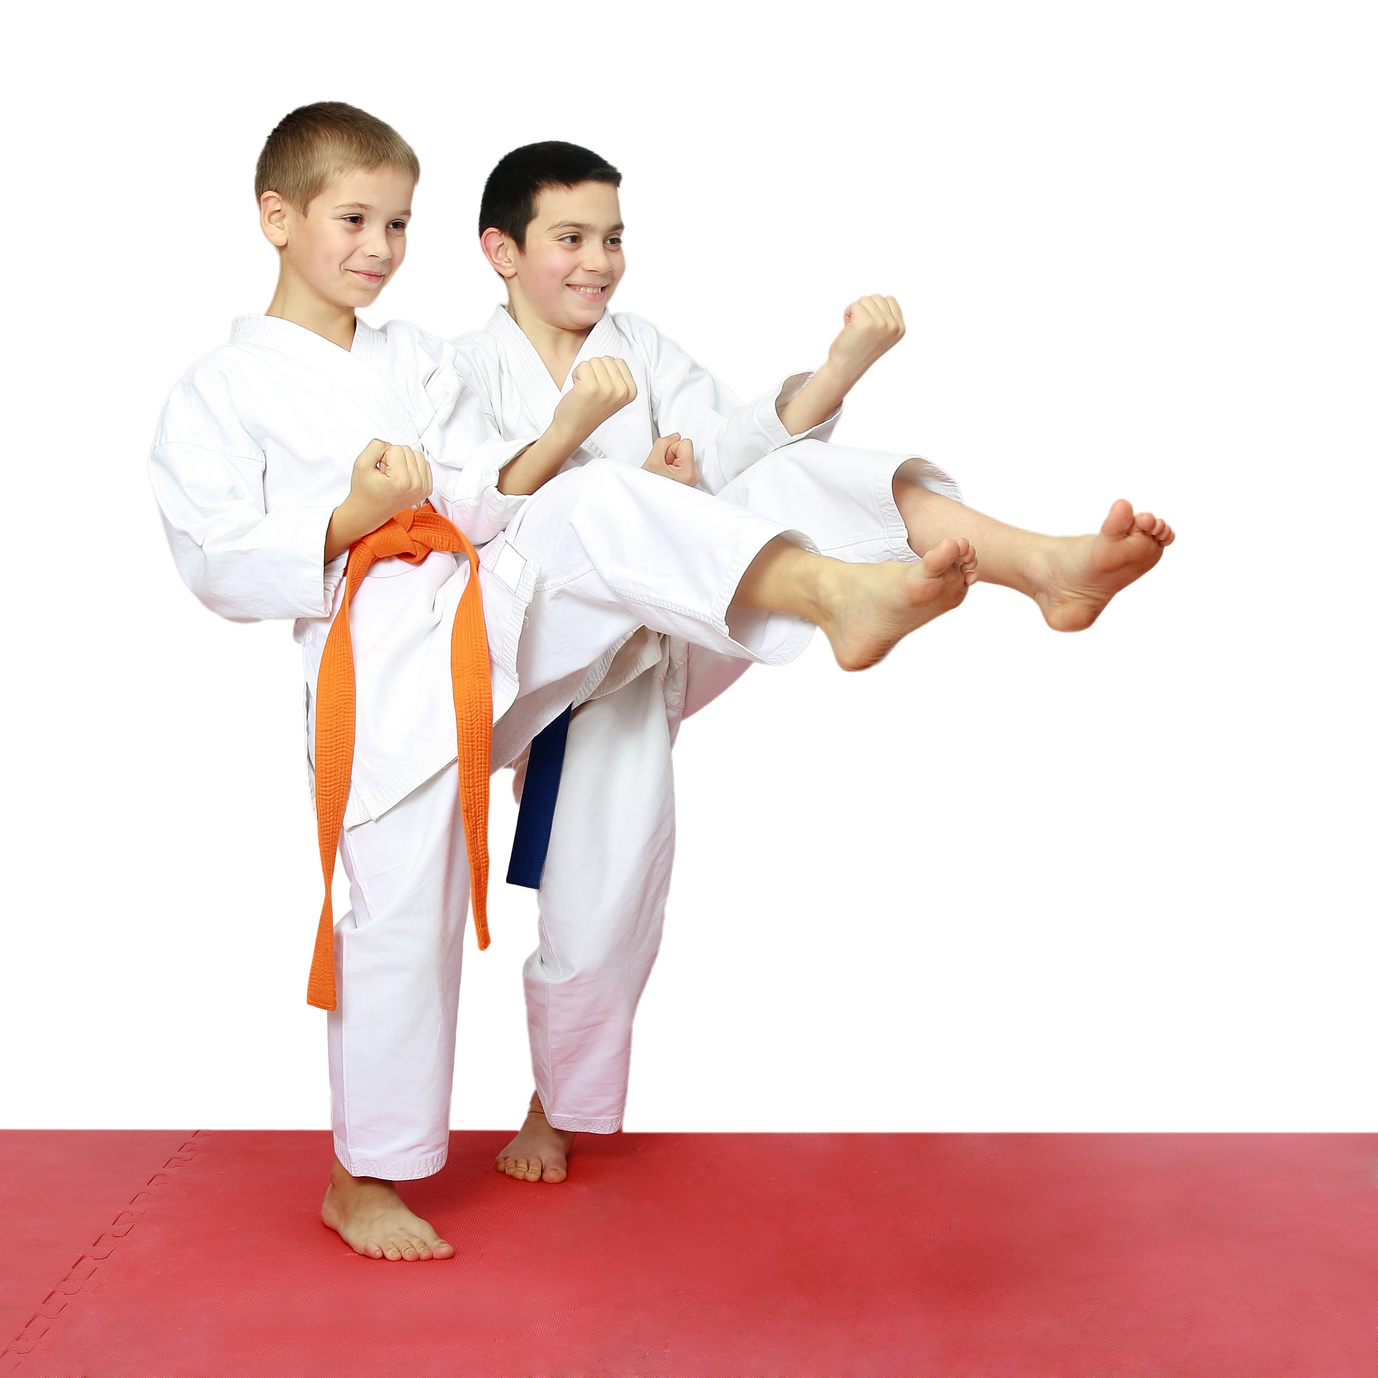 THE BEST MARTIAL ART FOR KIDS